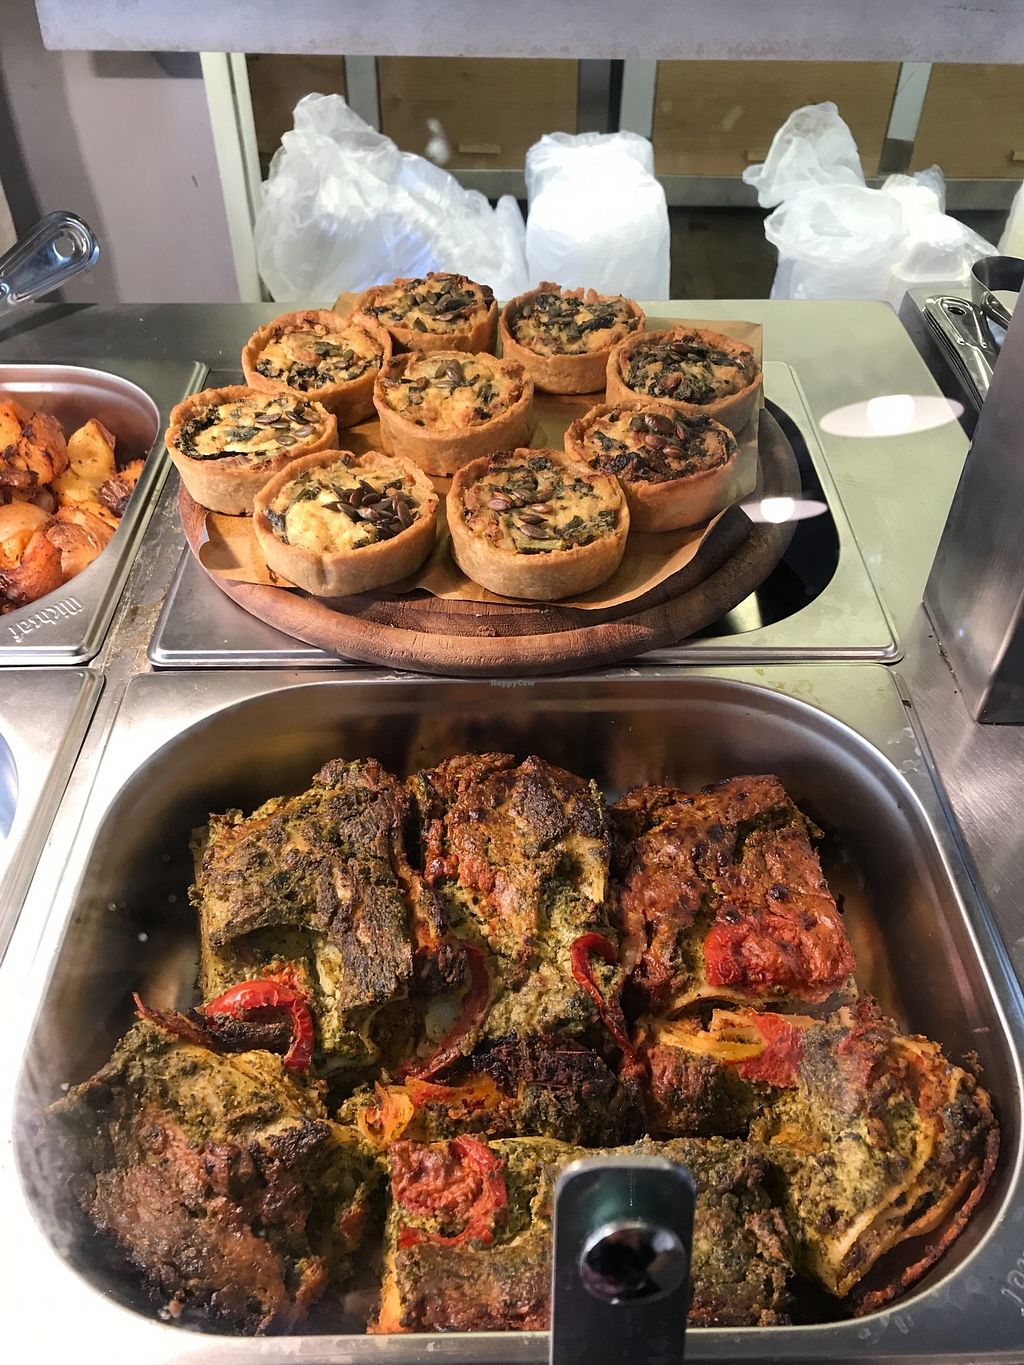 """Photo of Meshek Barzilay Deli  by <a href=""""/members/profile/Brok%20O.%20Lee"""">Brok O. Lee</a> <br/>Mini vegan quiches and other hot food <br/> January 13, 2018  - <a href='/contact/abuse/image/109391/346248'>Report</a>"""